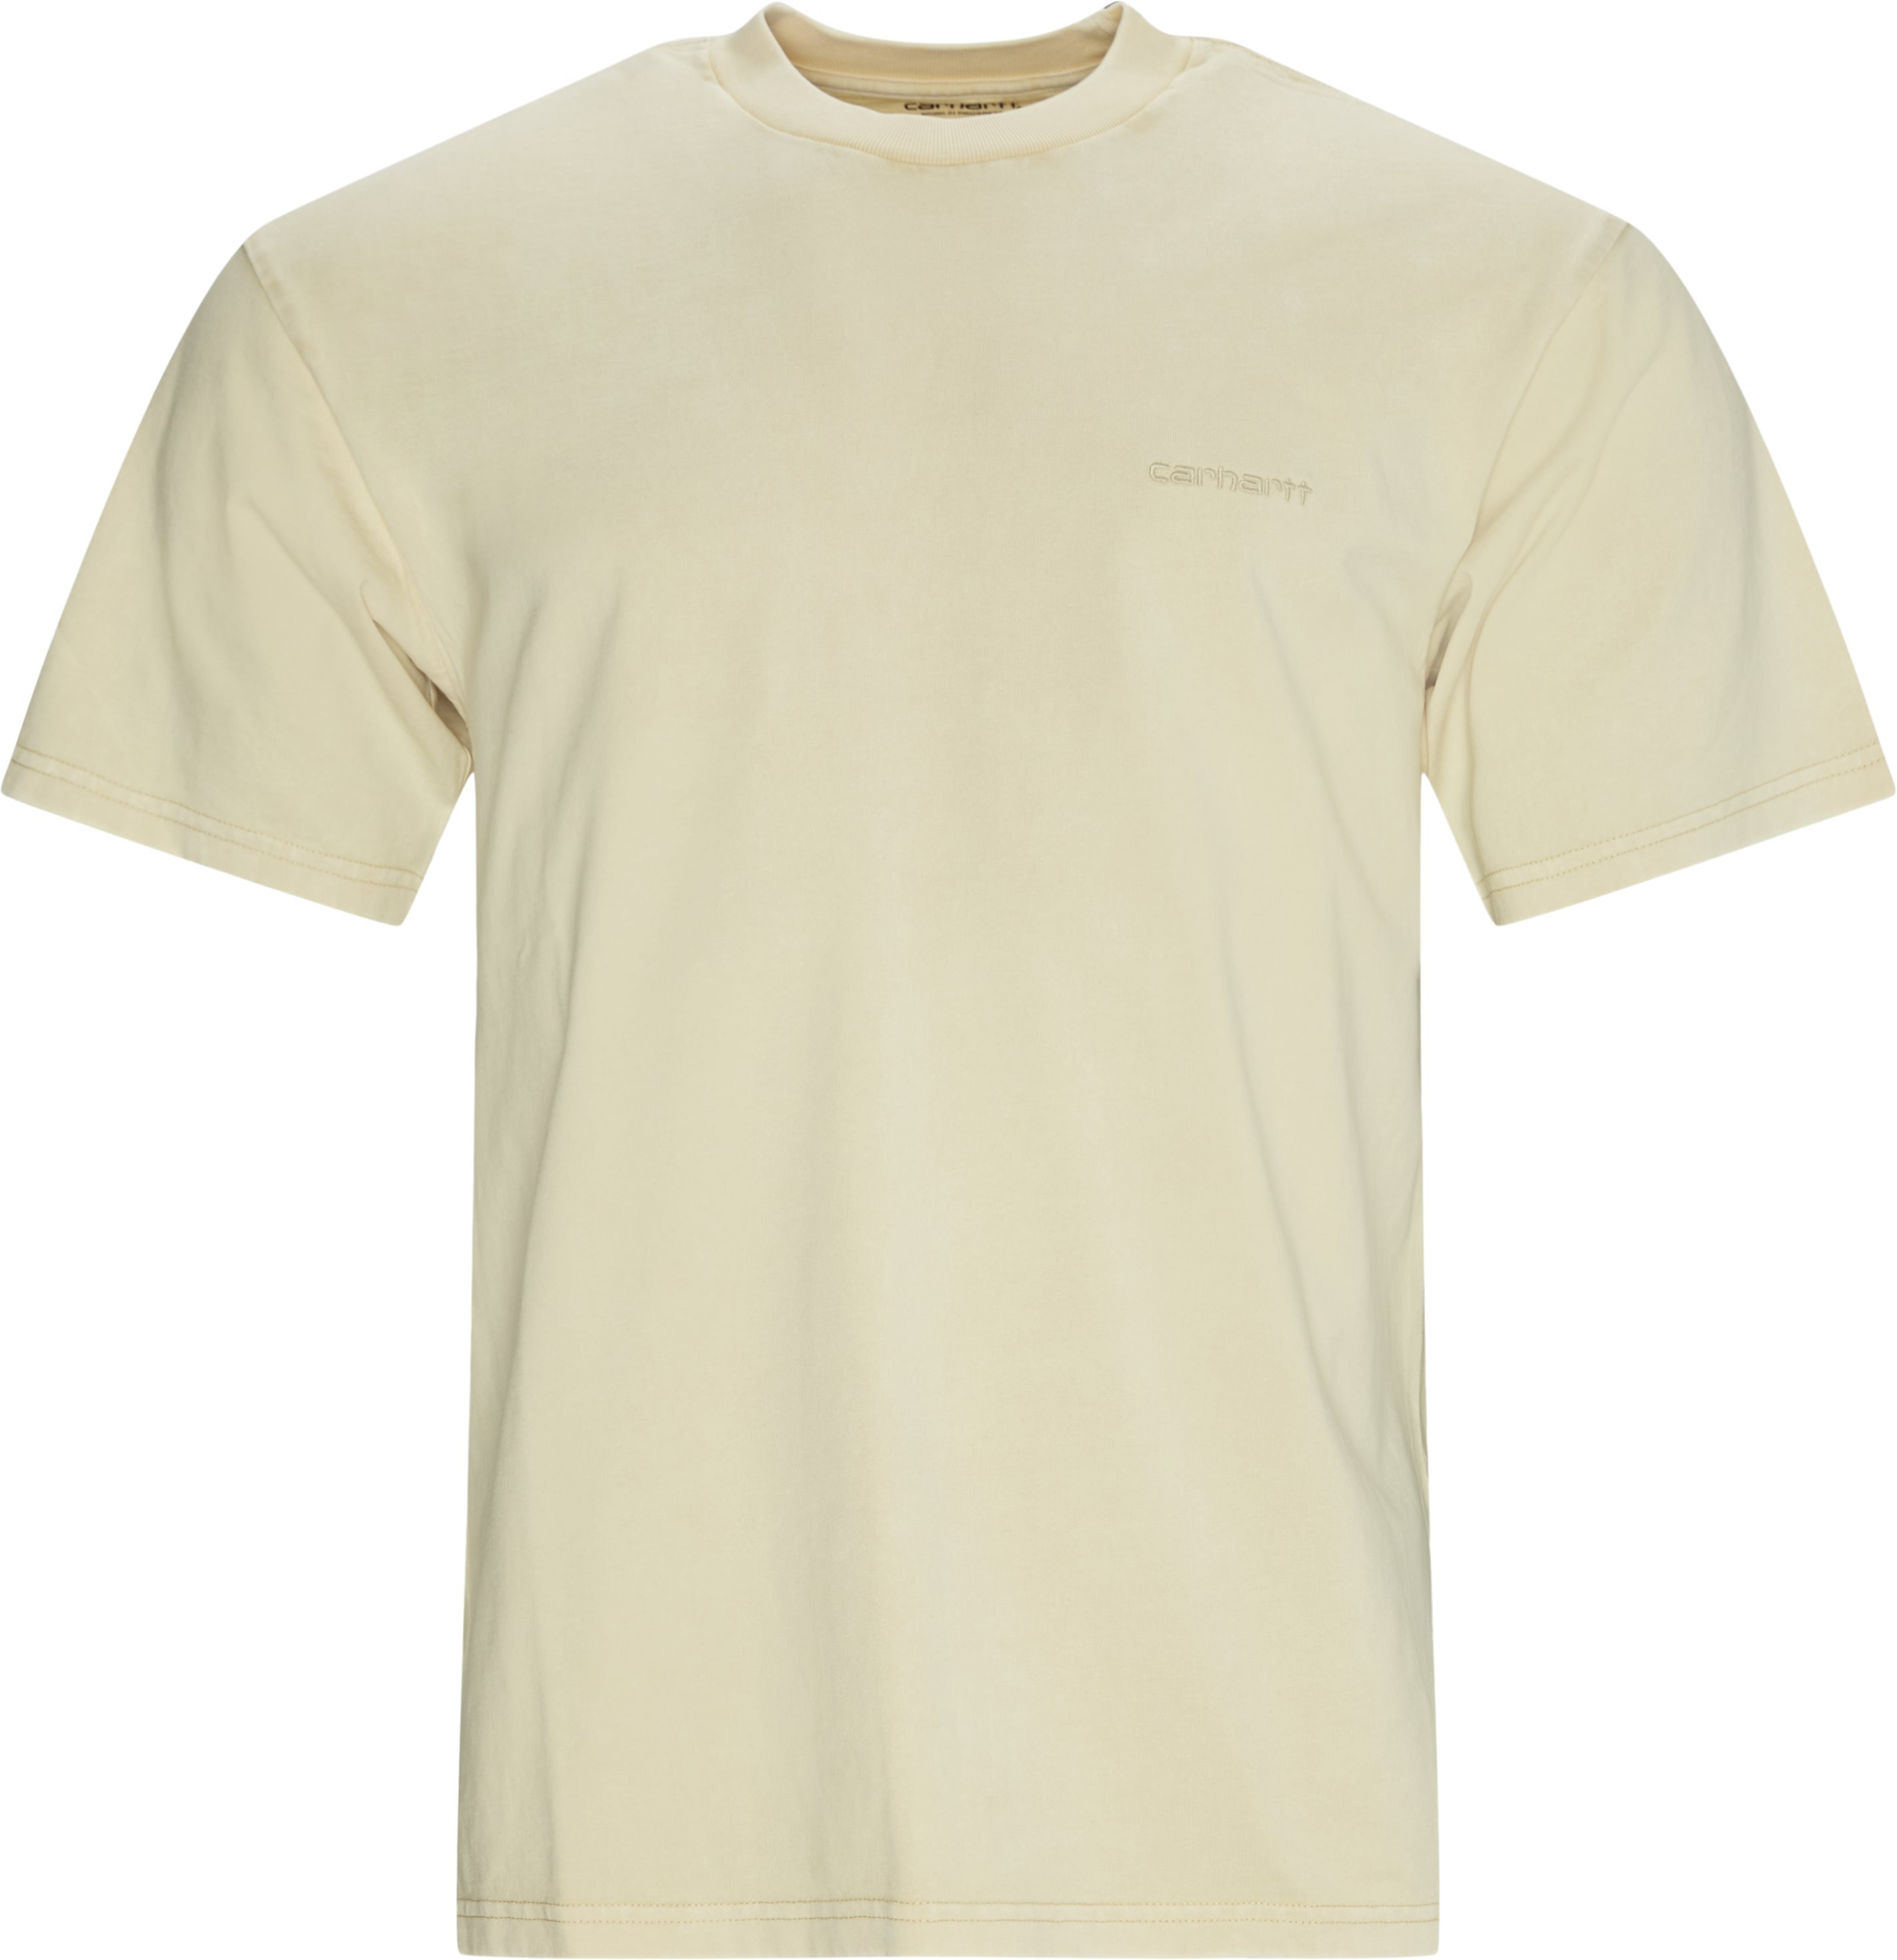 T-shirts - Regular fit - Brown